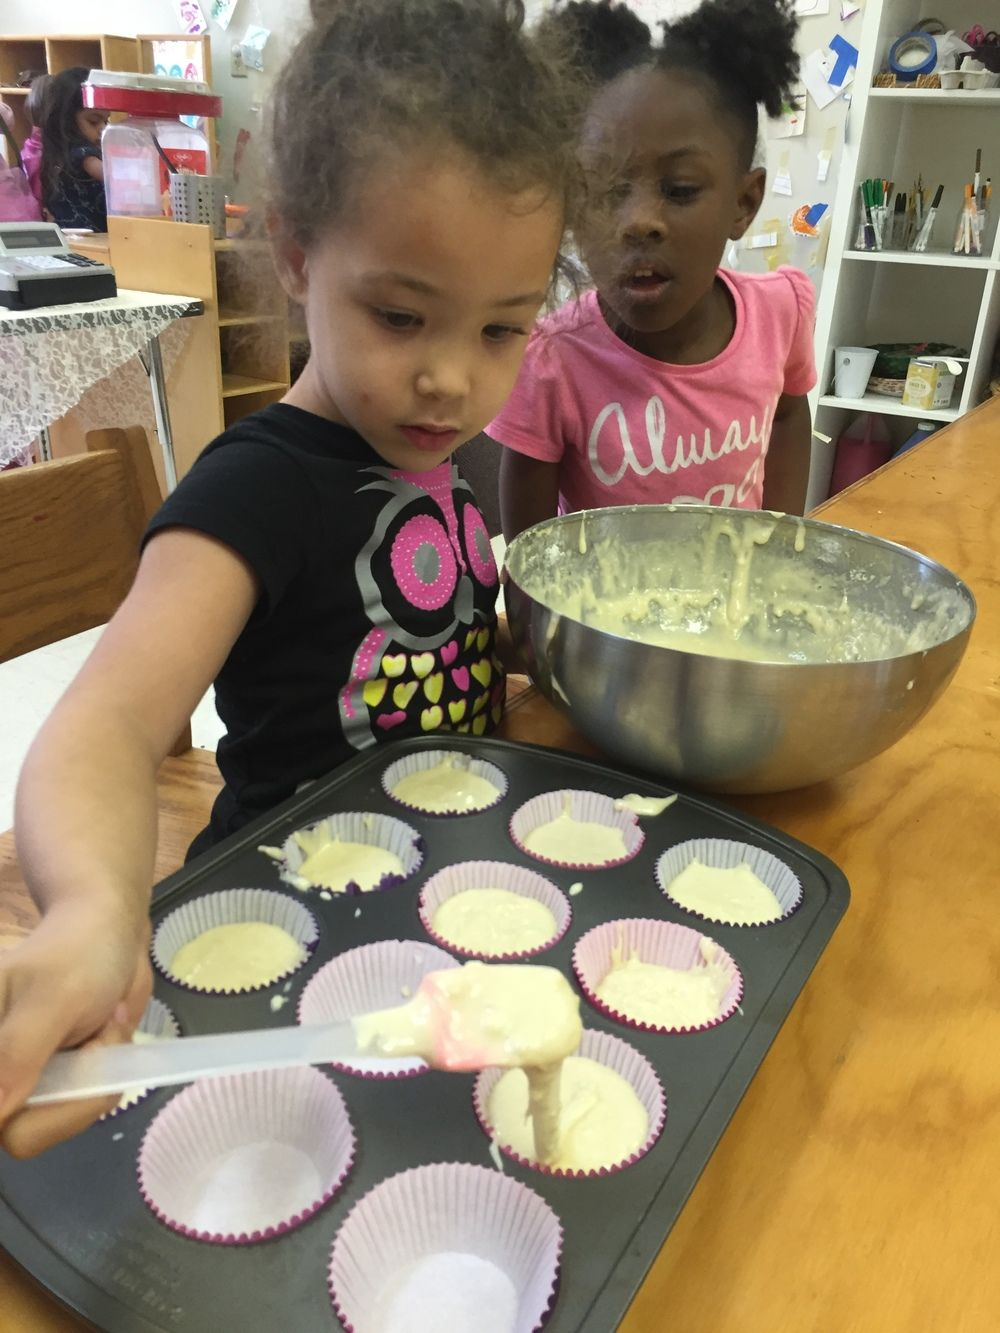 Making Cupcakes Requires A Great Deal Of Teamwork So The Children